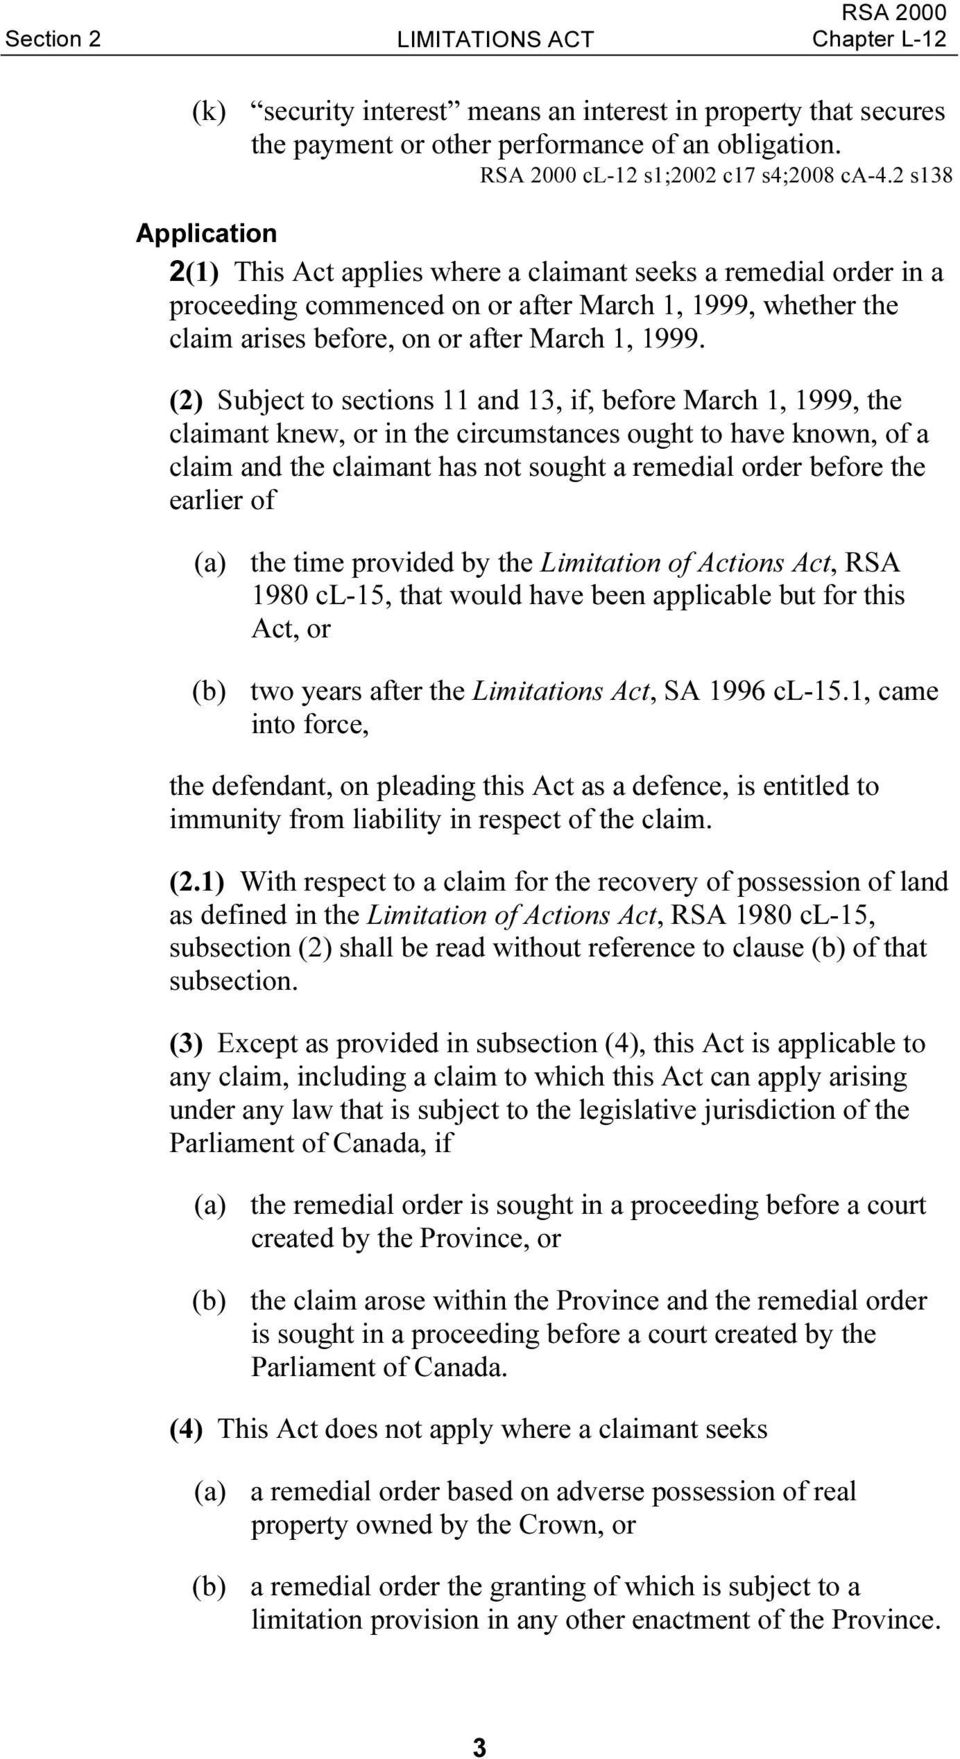 (2) Subject to sections 11 and 13, if, before March 1, 1999, the claimant knew, or in the circumstances ought to have known, of a claim and the claimant has not sought a remedial order before the